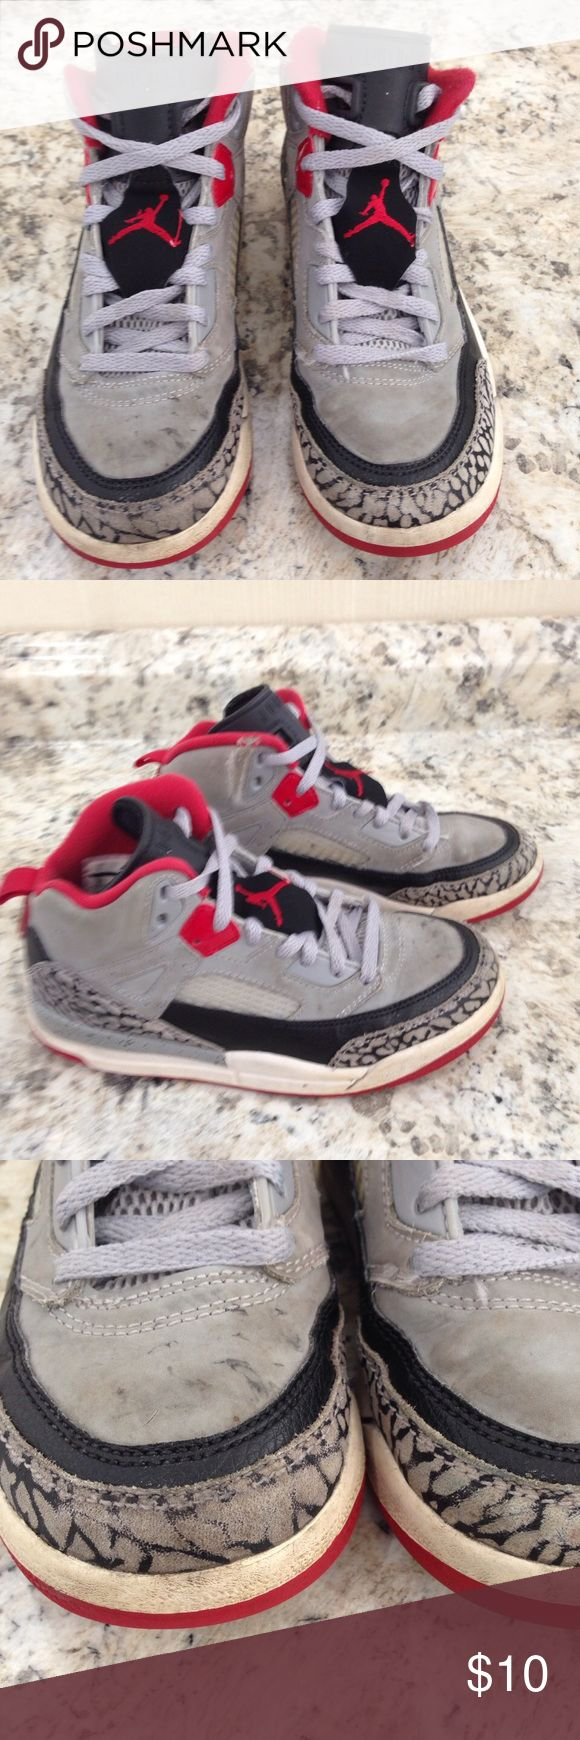 🌴NEW LISTING🌴 Distressed Jordan Sneakers Gray, black and red. Distressed. Appears soiled even though washed. Show signs of wear. Size 1. (5/8) Jordan Shoes Sneakers